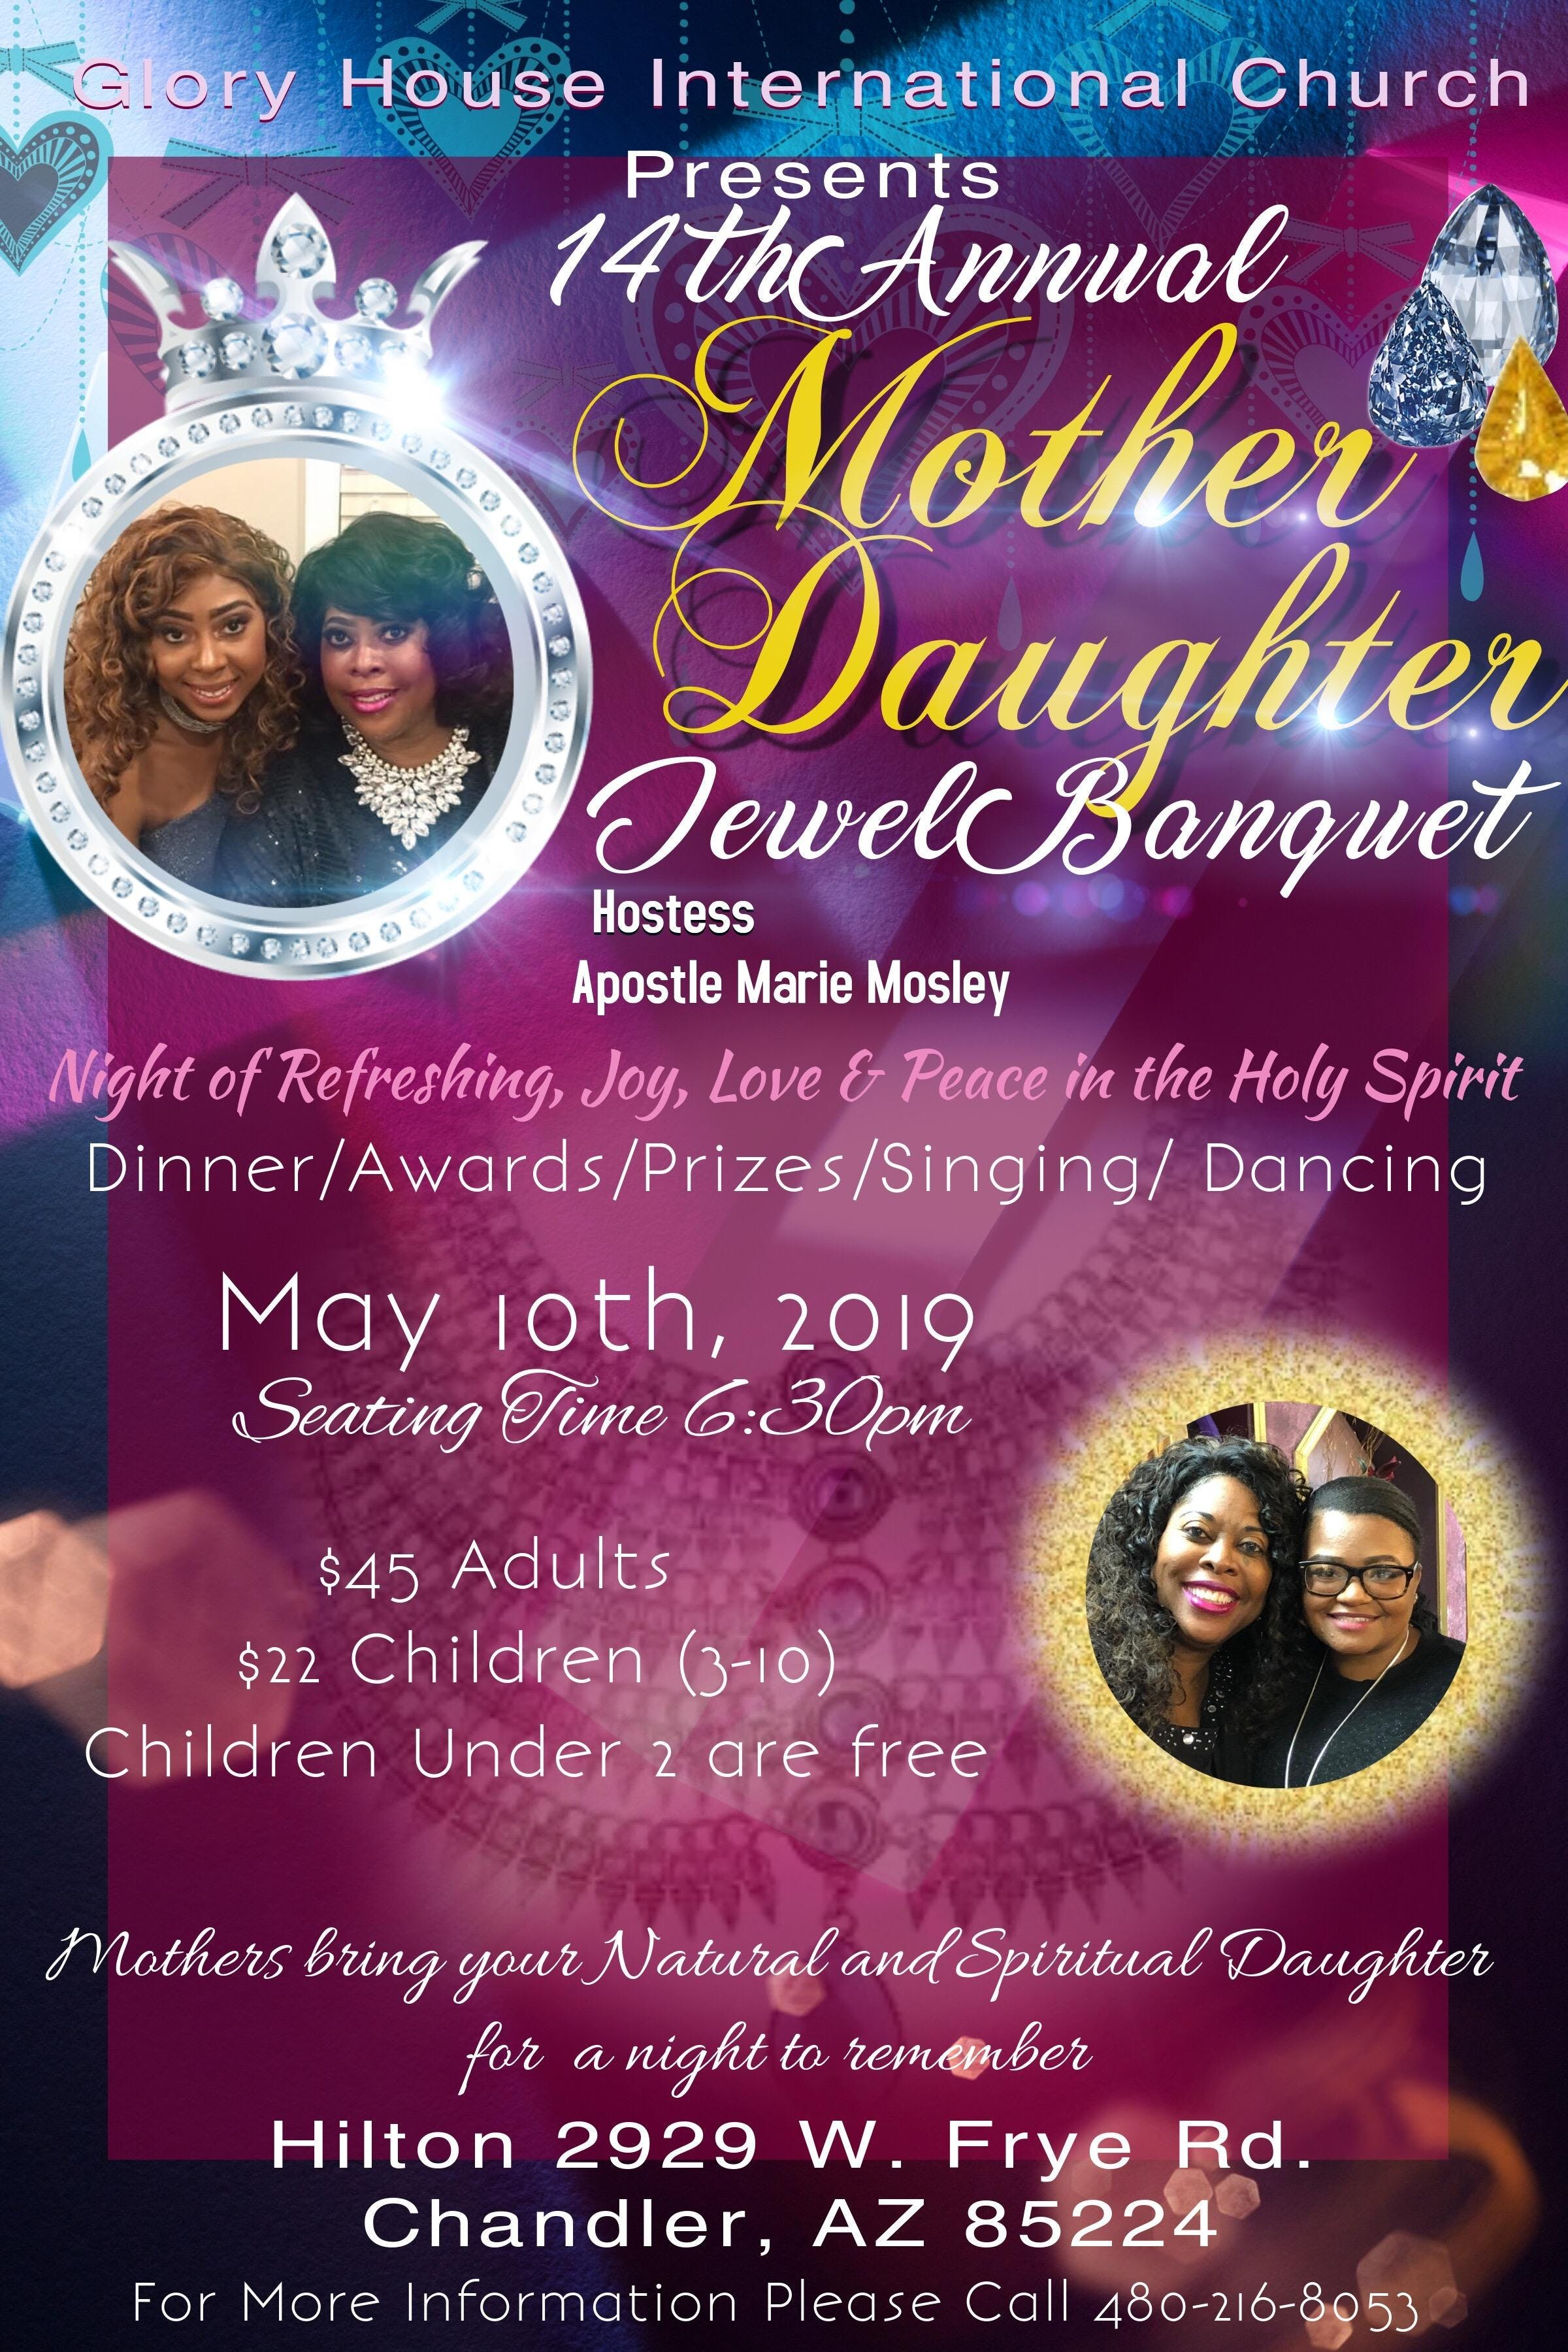 14th Annual Mother-Daughter Jewel Banquet